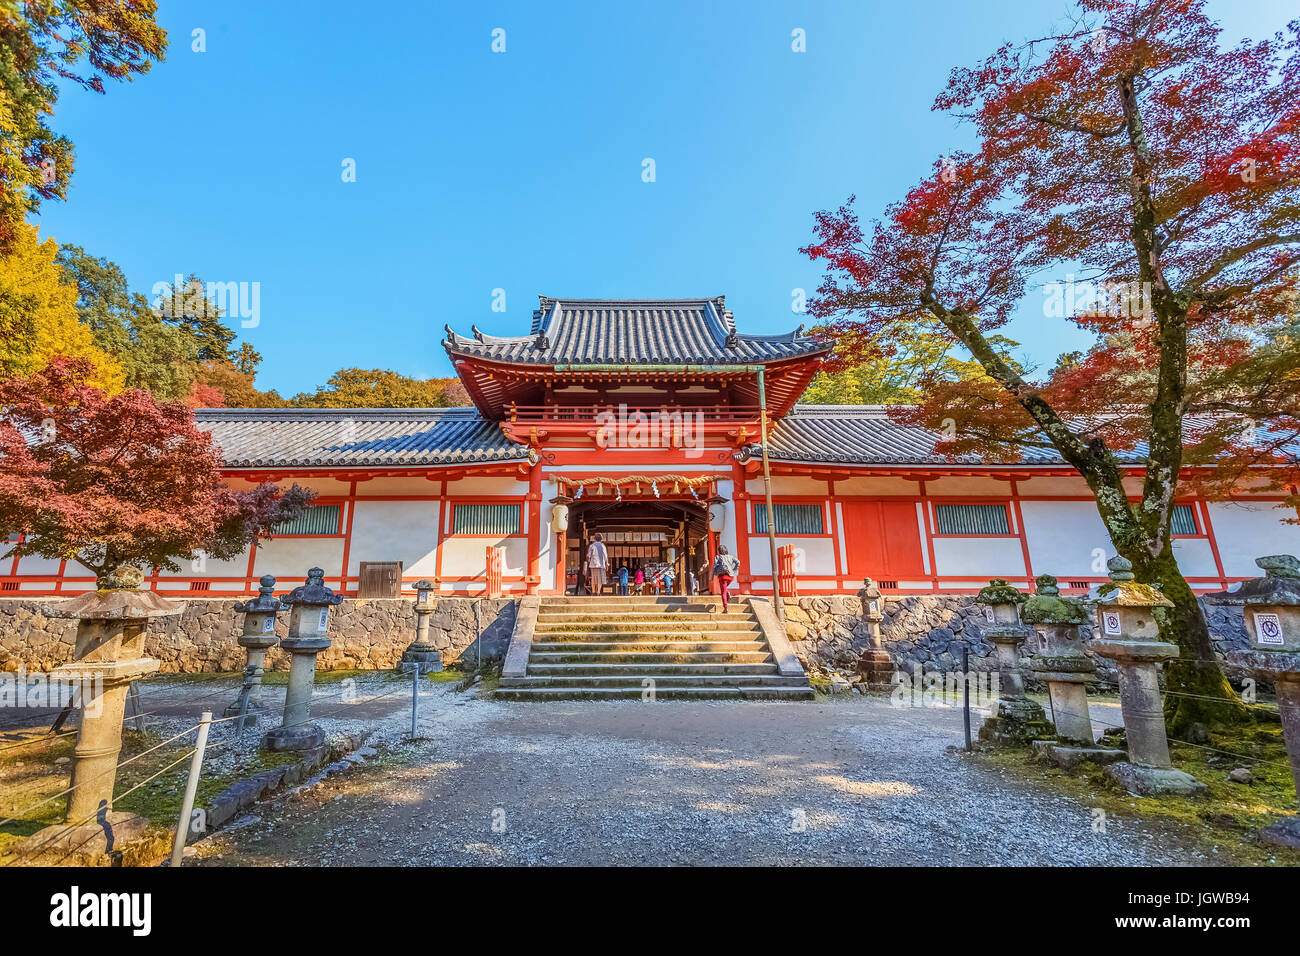 Tamukeyama Hachimangu in Nara, Japan - Stock Image